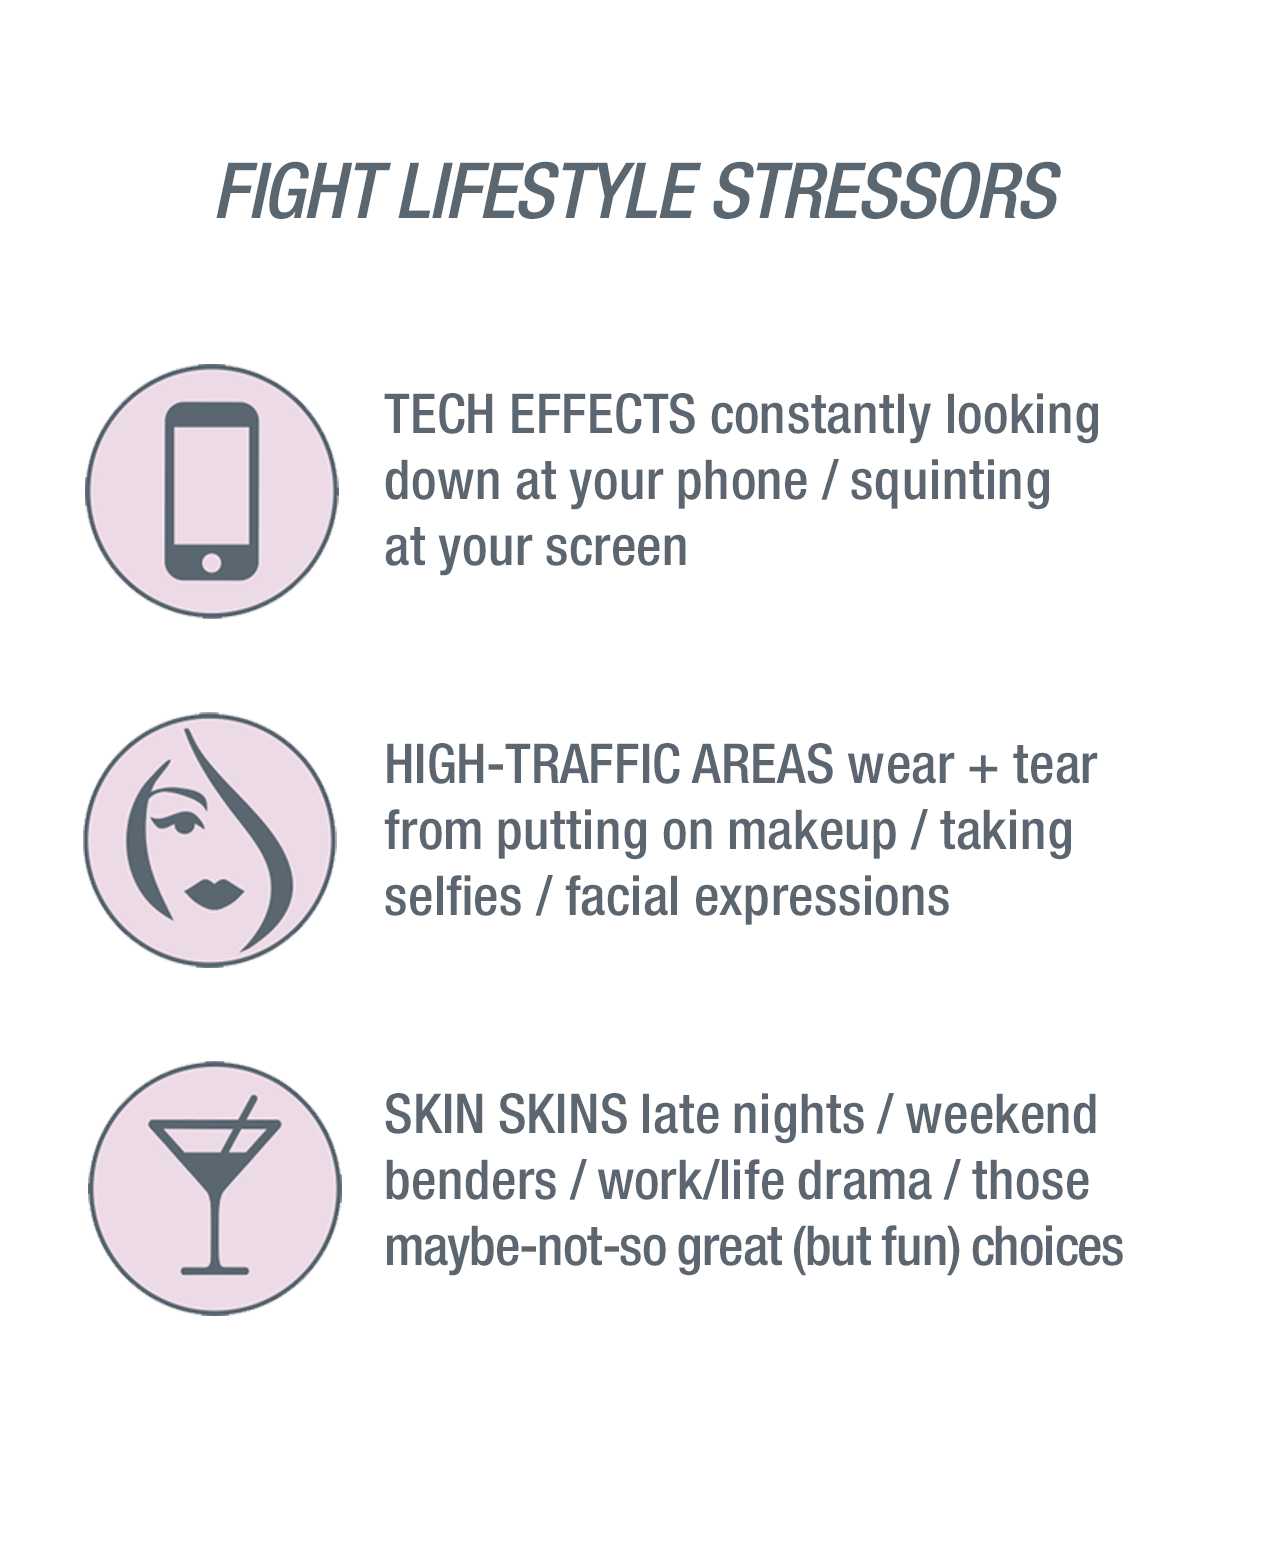 Fight Lifestyle Stressors